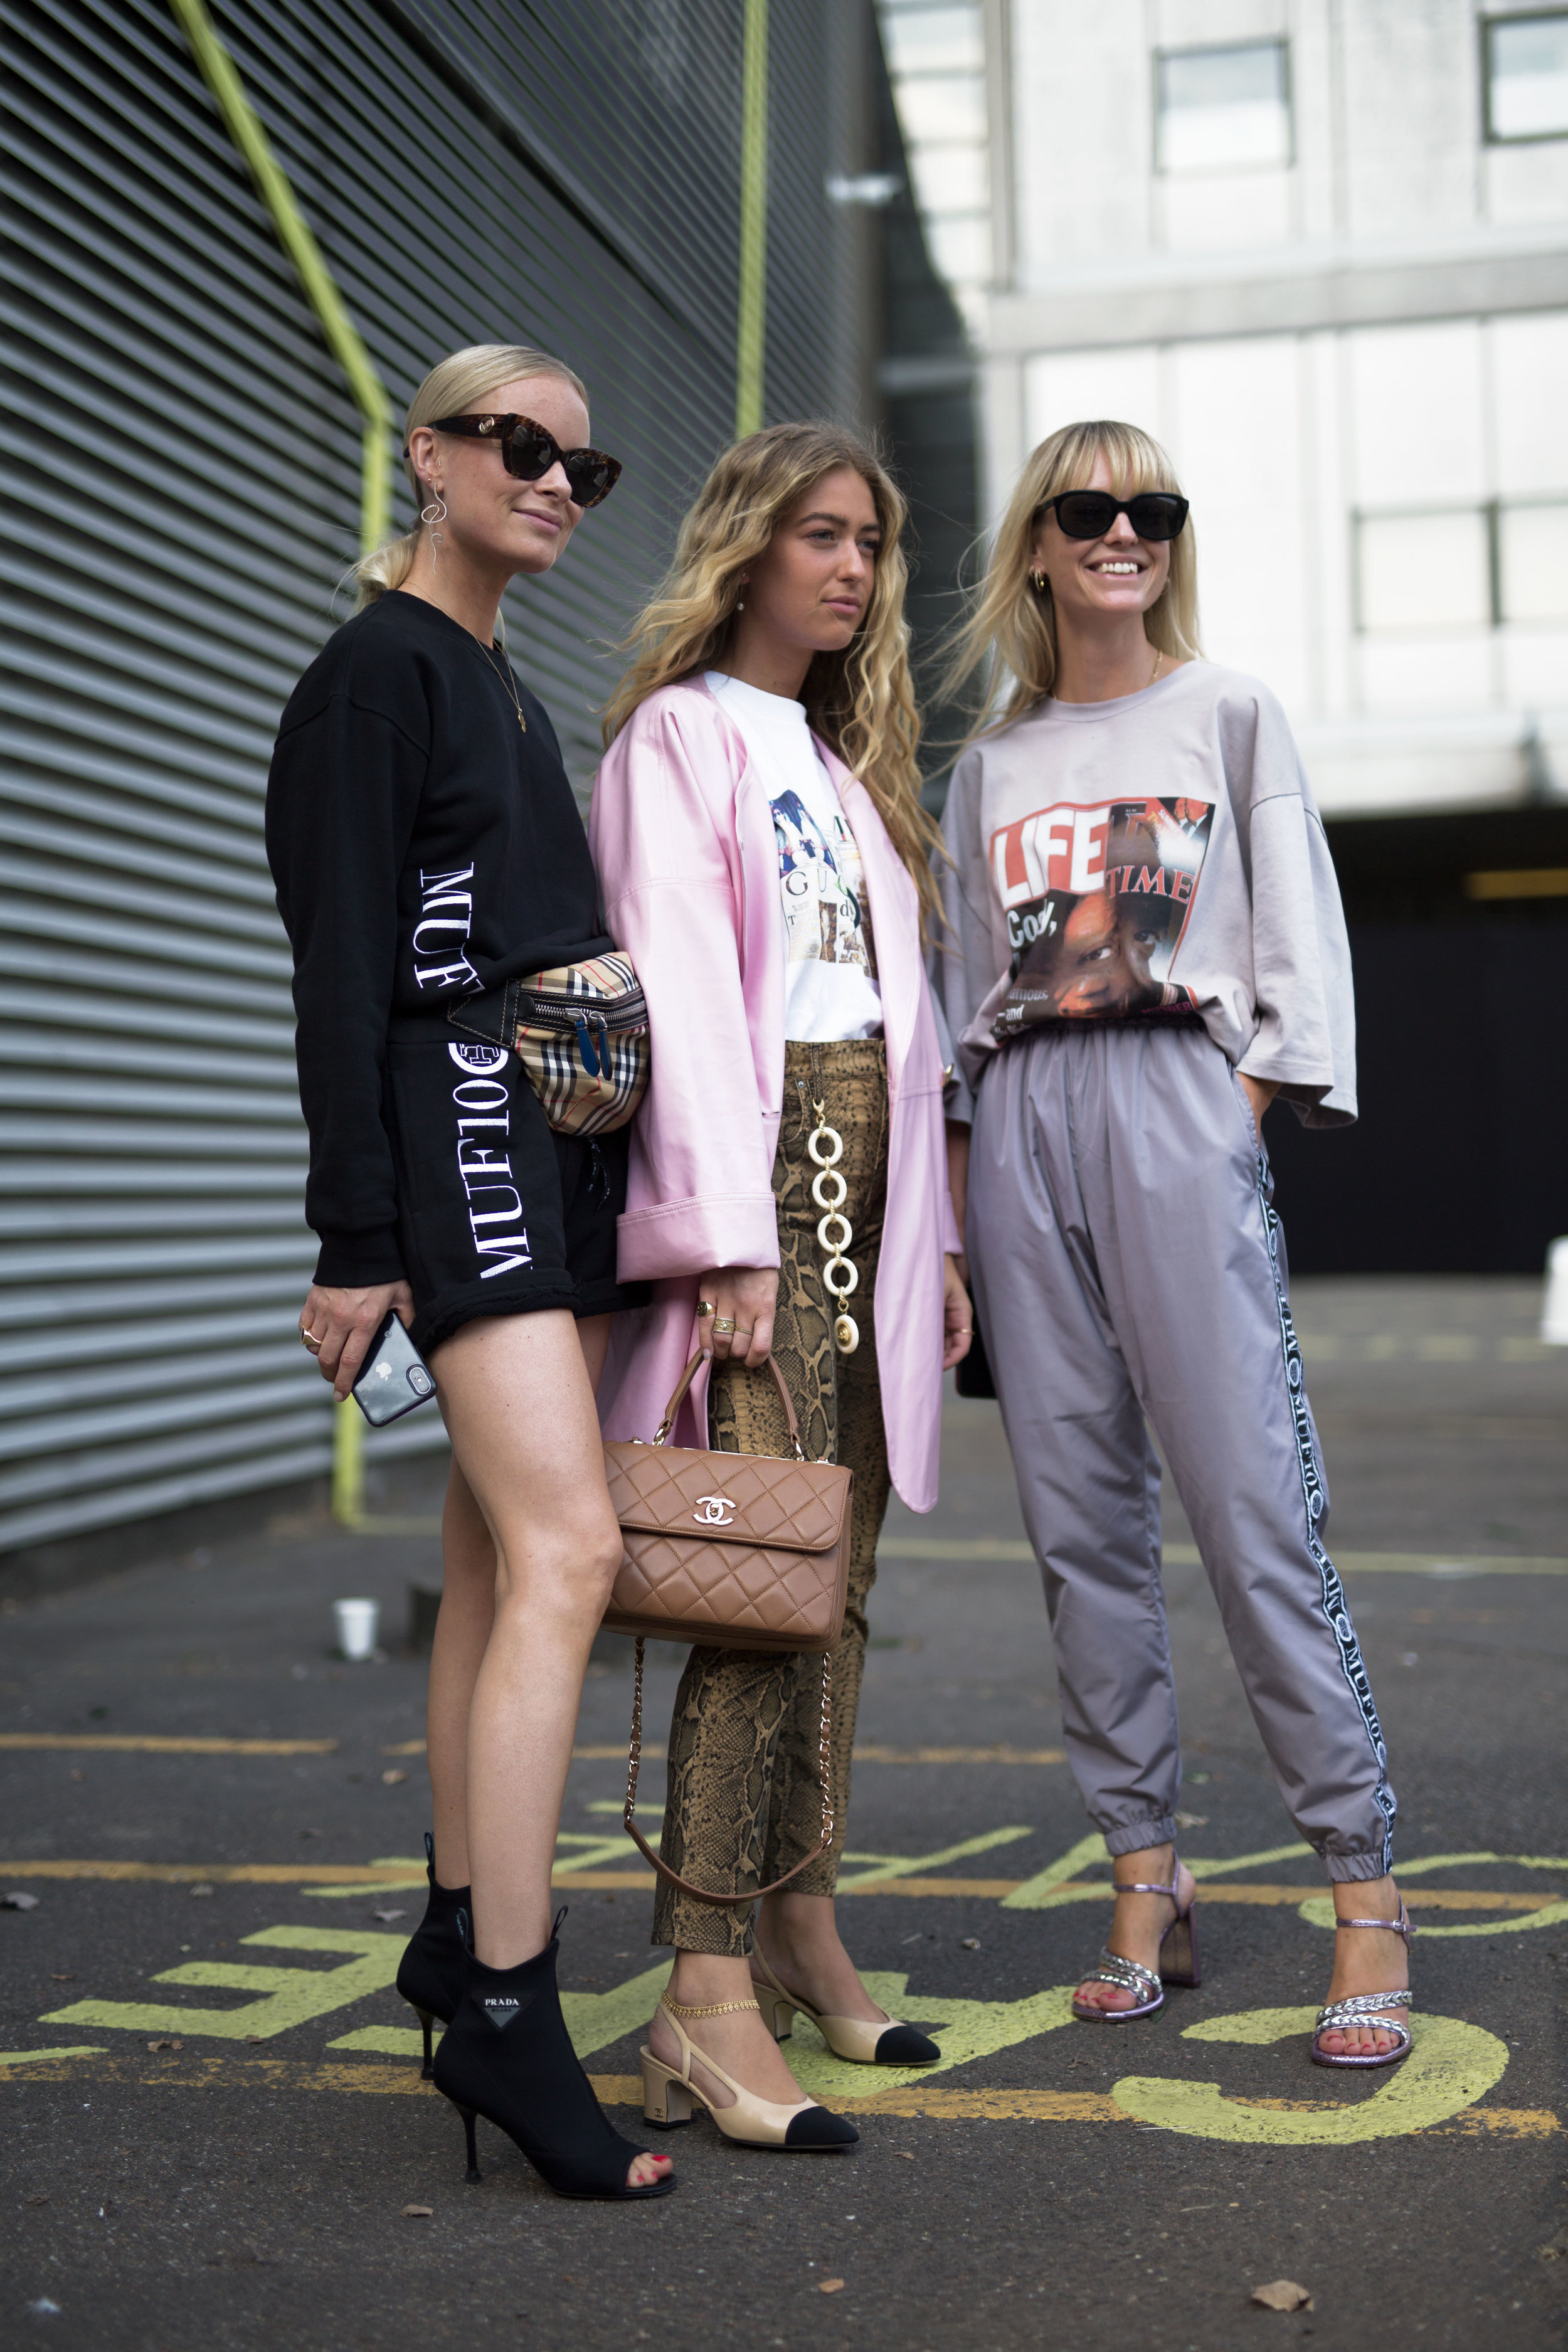 TheStreetland_Copenhagen_Fashion_Week_SS19_78.jpg